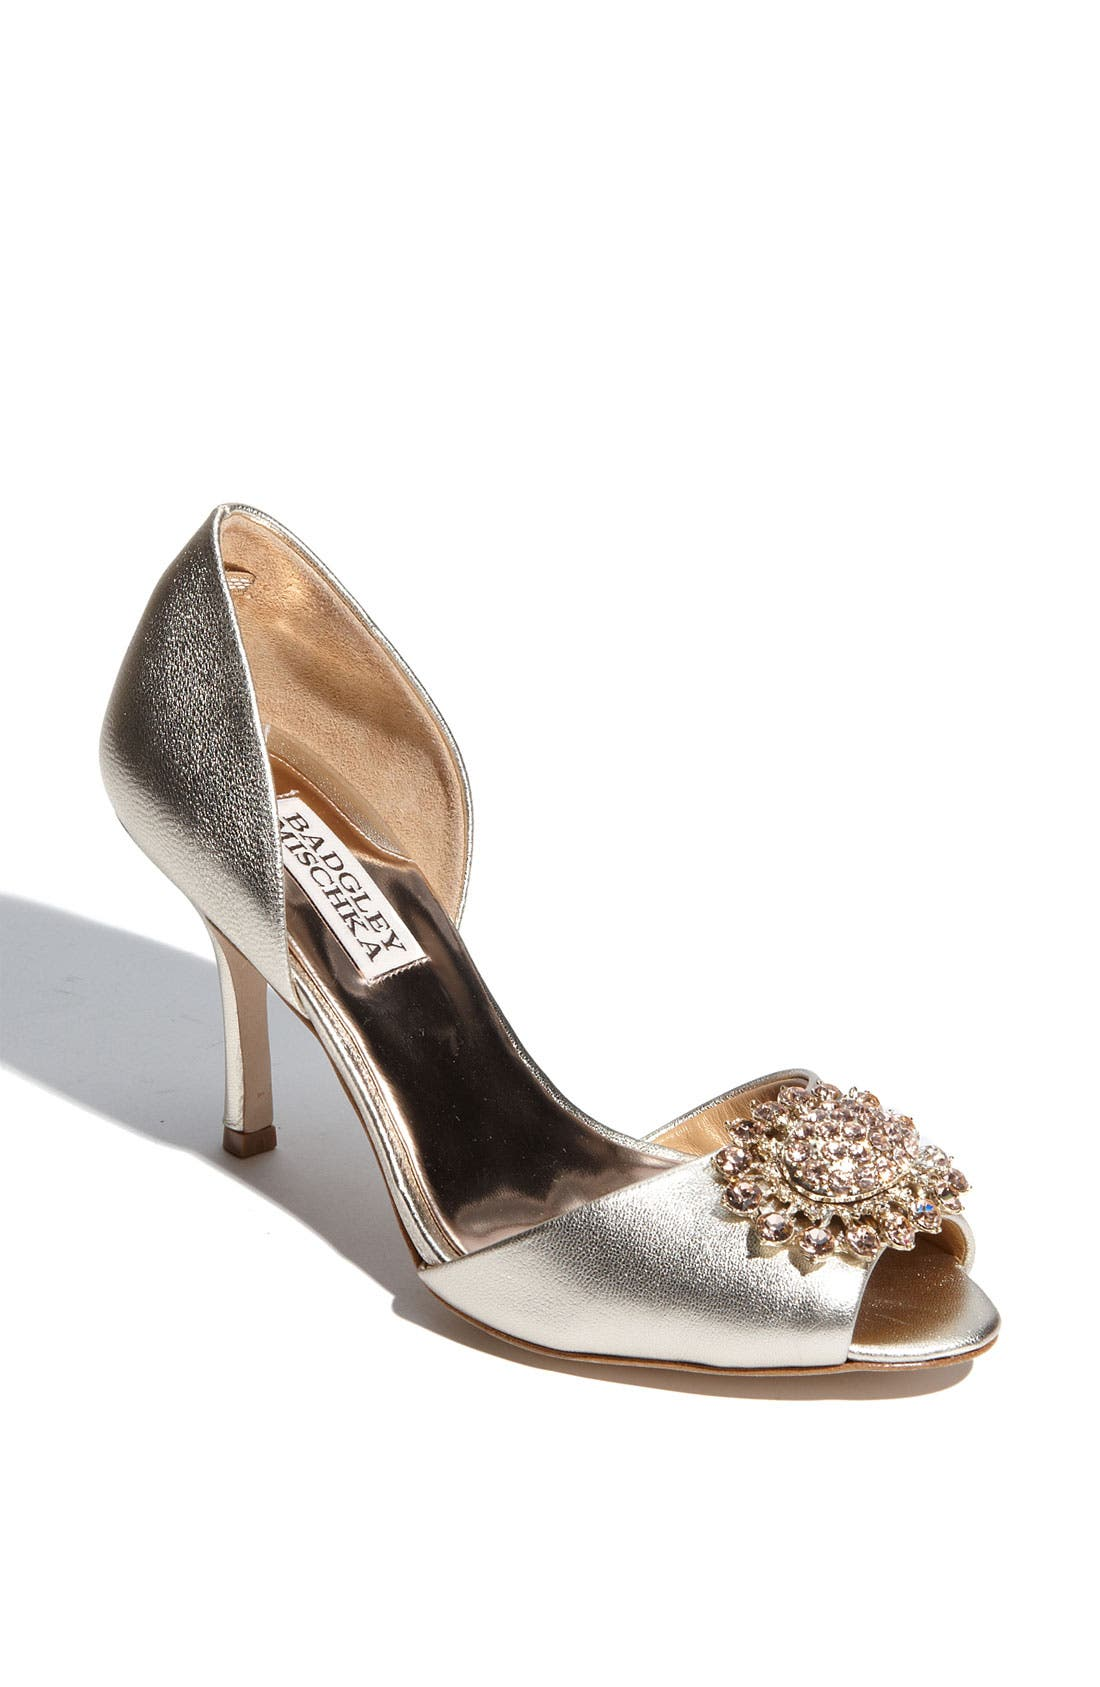 Alternate Image 1 Selected - Badgley Mischka 'Lacie' Pump